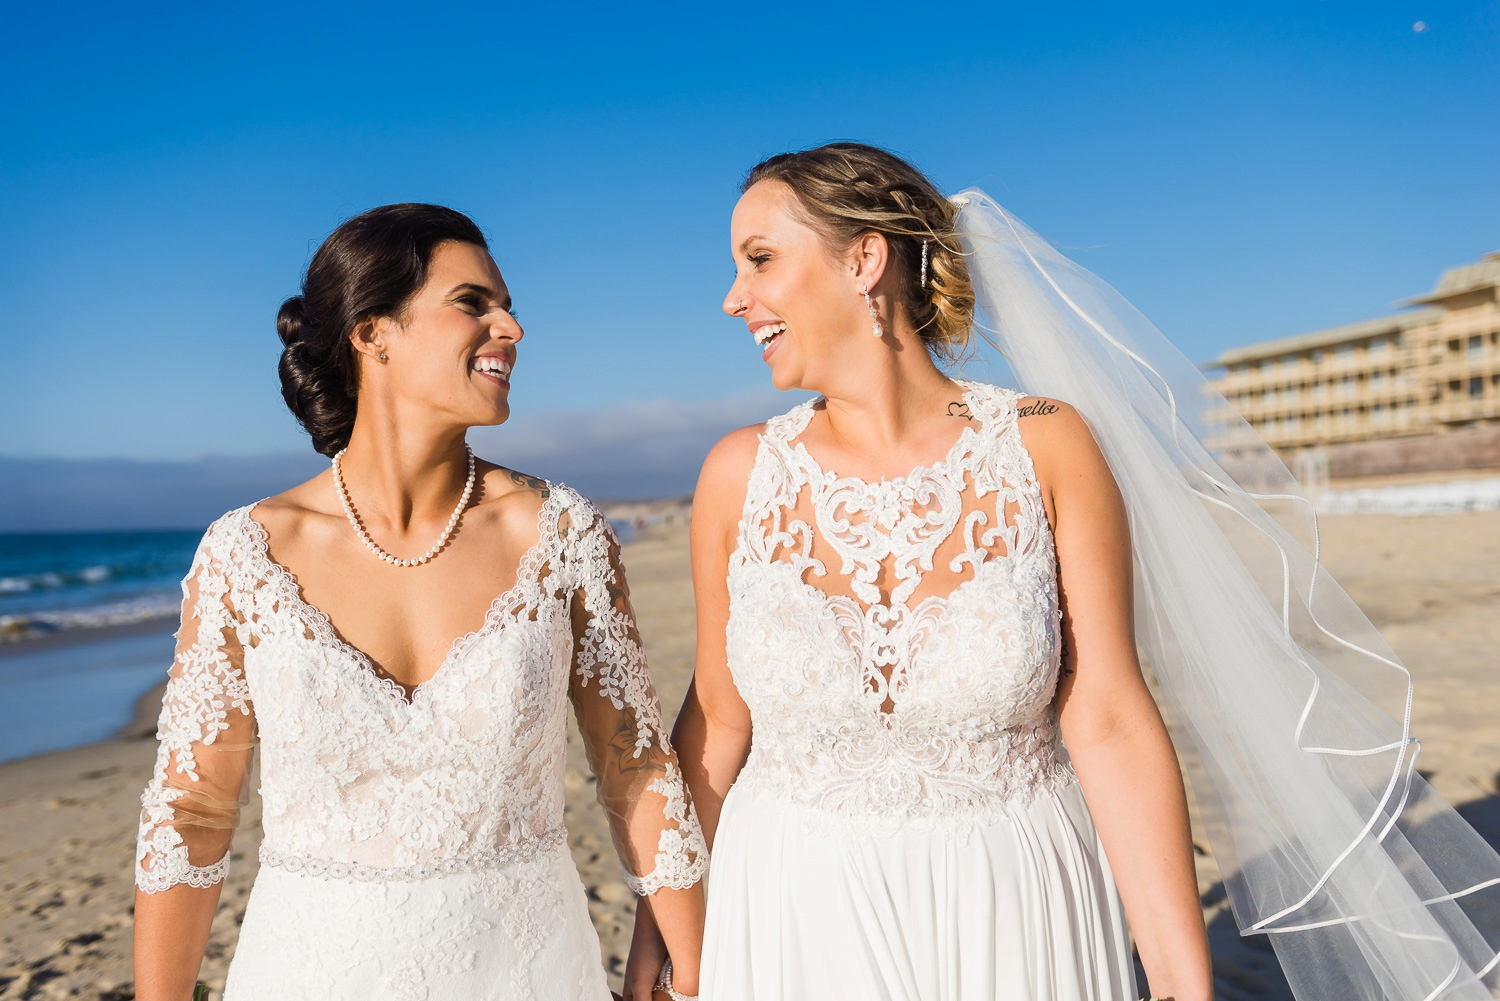 Two brides smiling at the beach